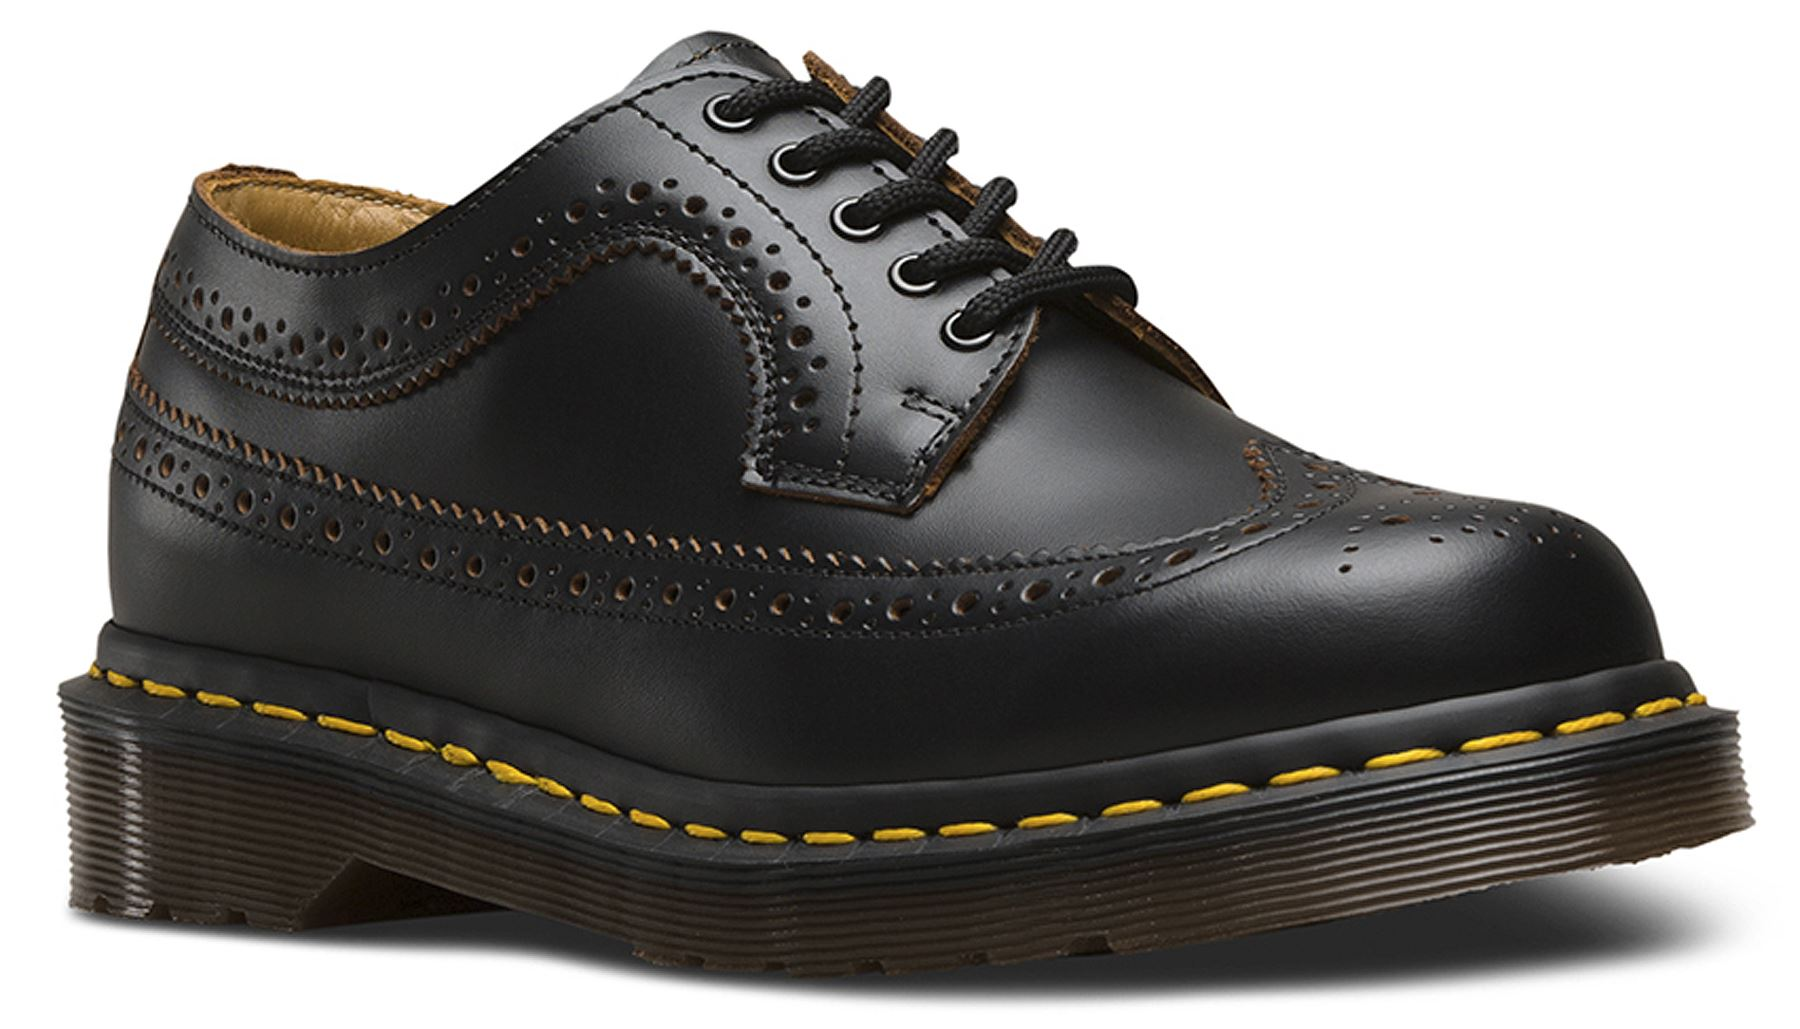 Dr Martens Uomo Made In England 3989 Brogue Leather Premium Quilon Leather Brogue Shoes 64beda